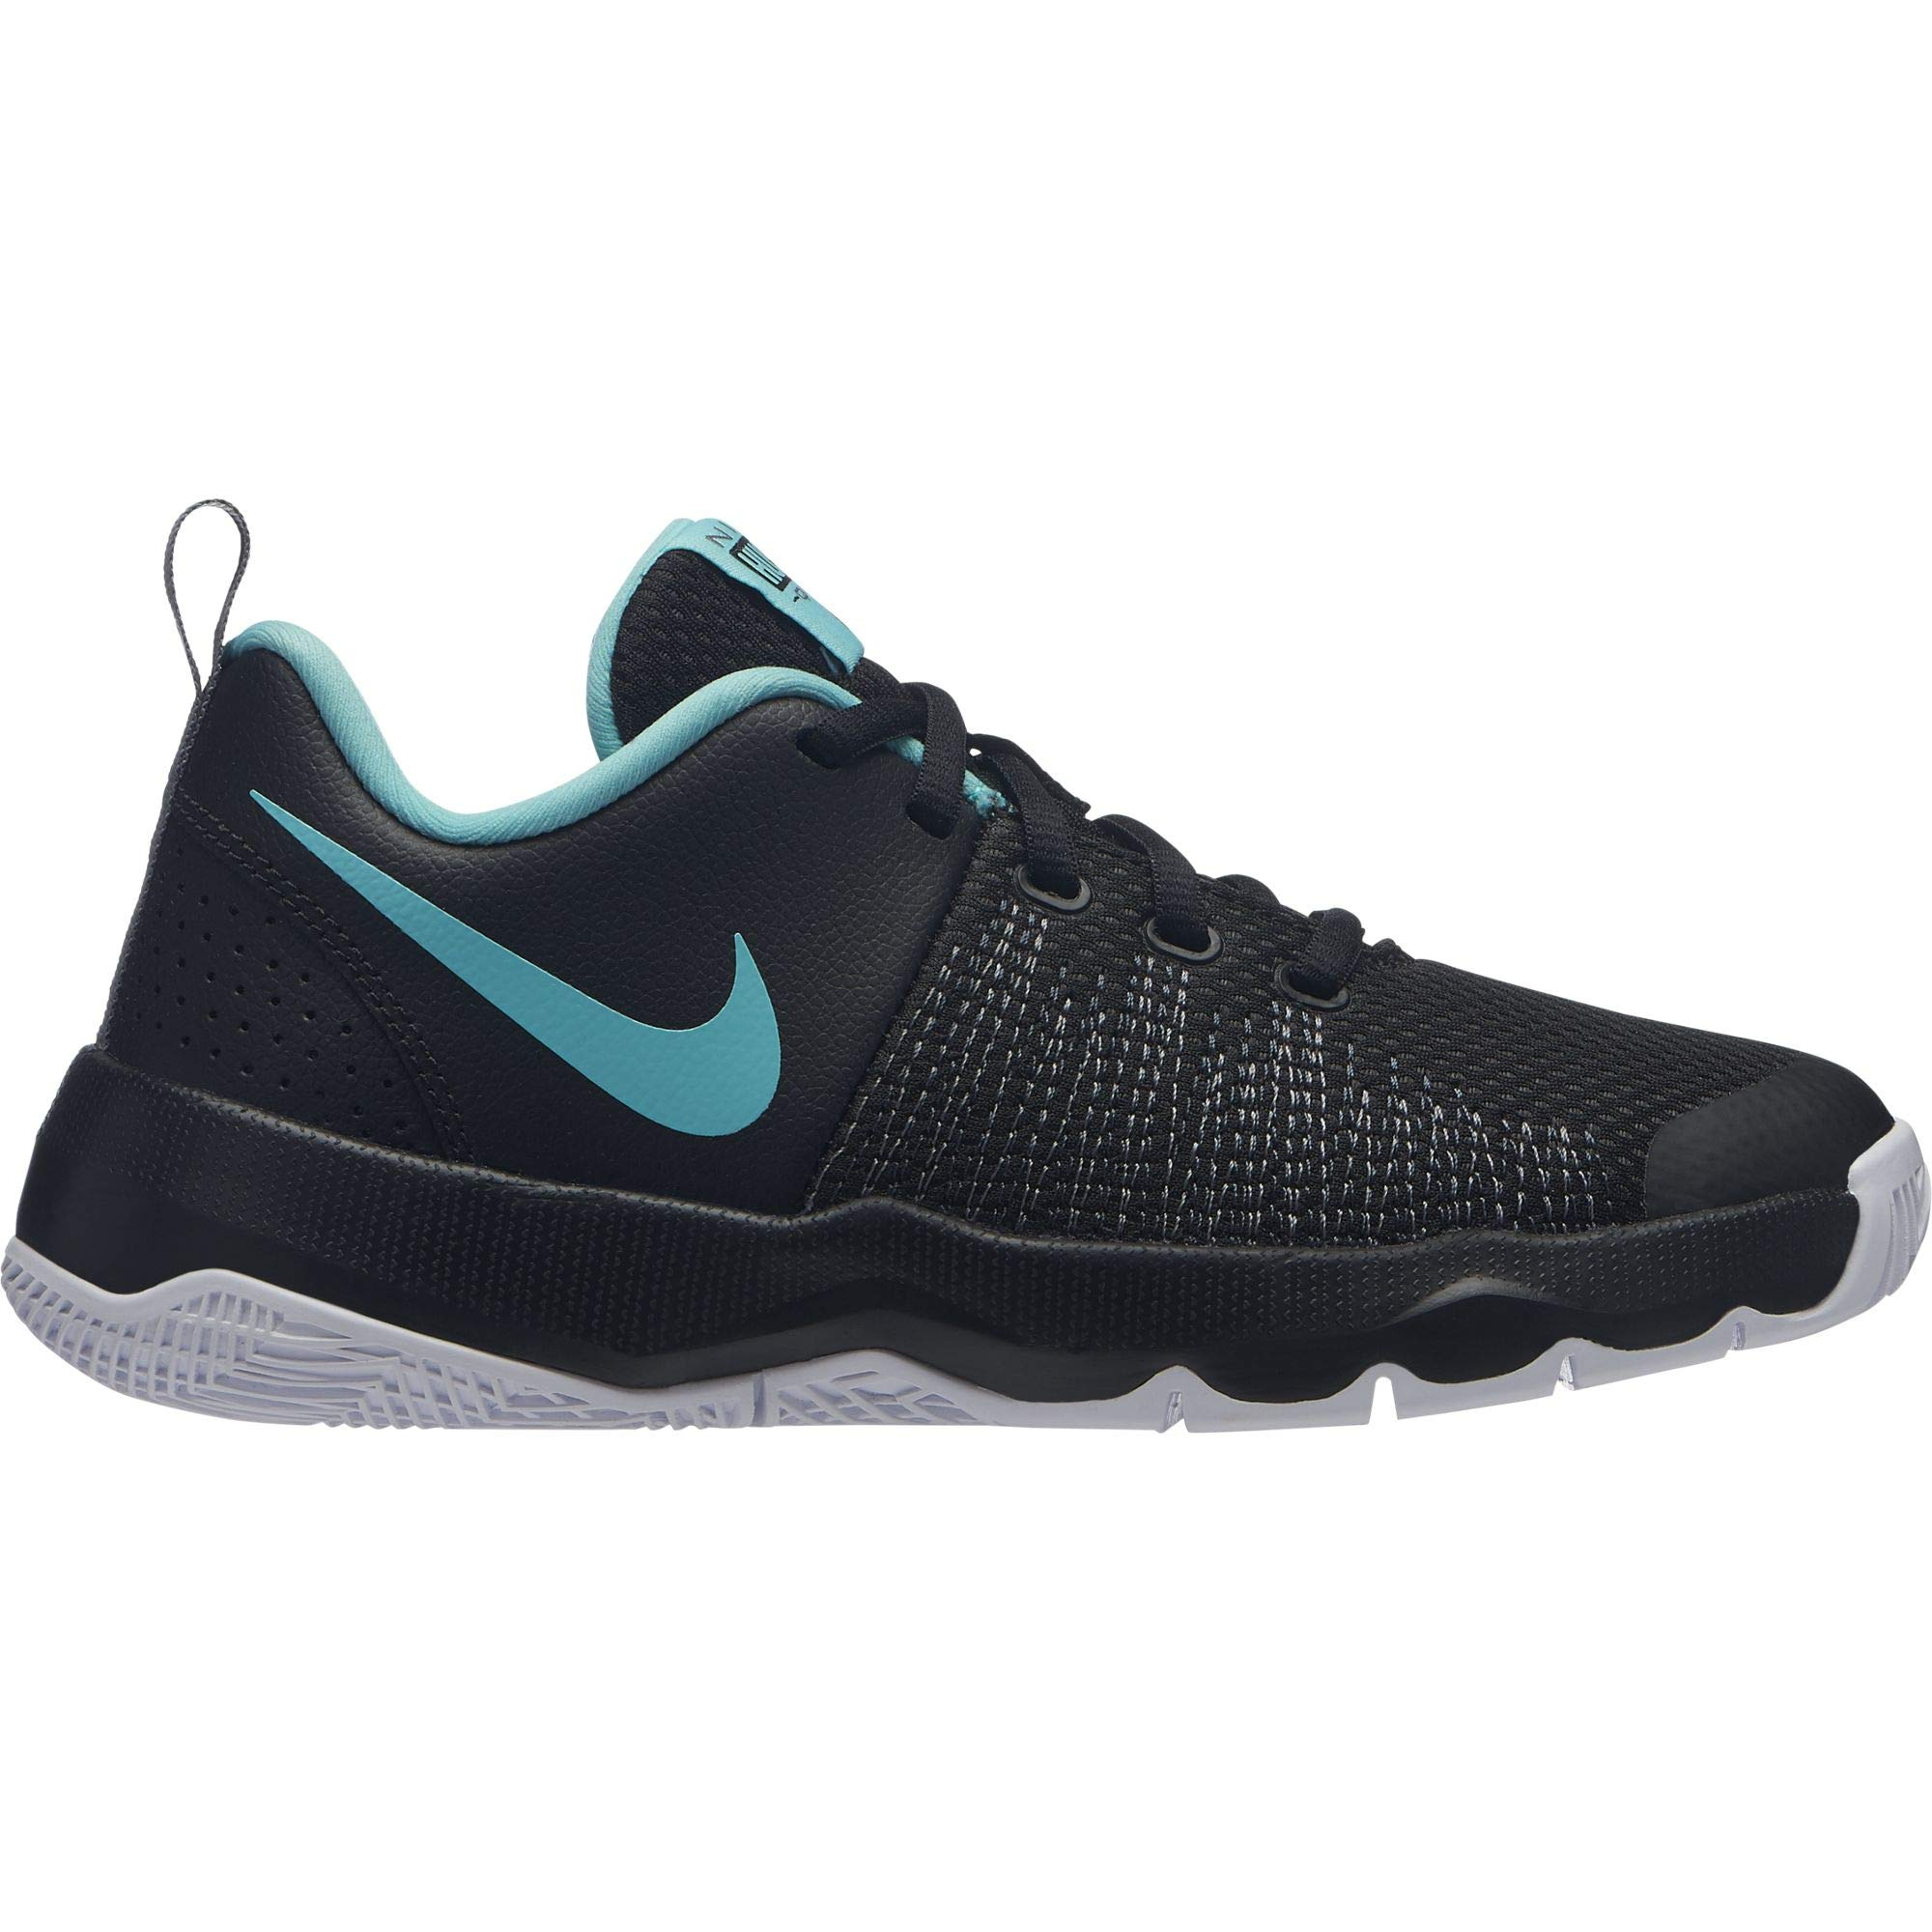 Nike Boy's Team Hustle Quick (GS) Basketball Shoe Black/Aurora Green/Cool Grey Size 5.5 M US